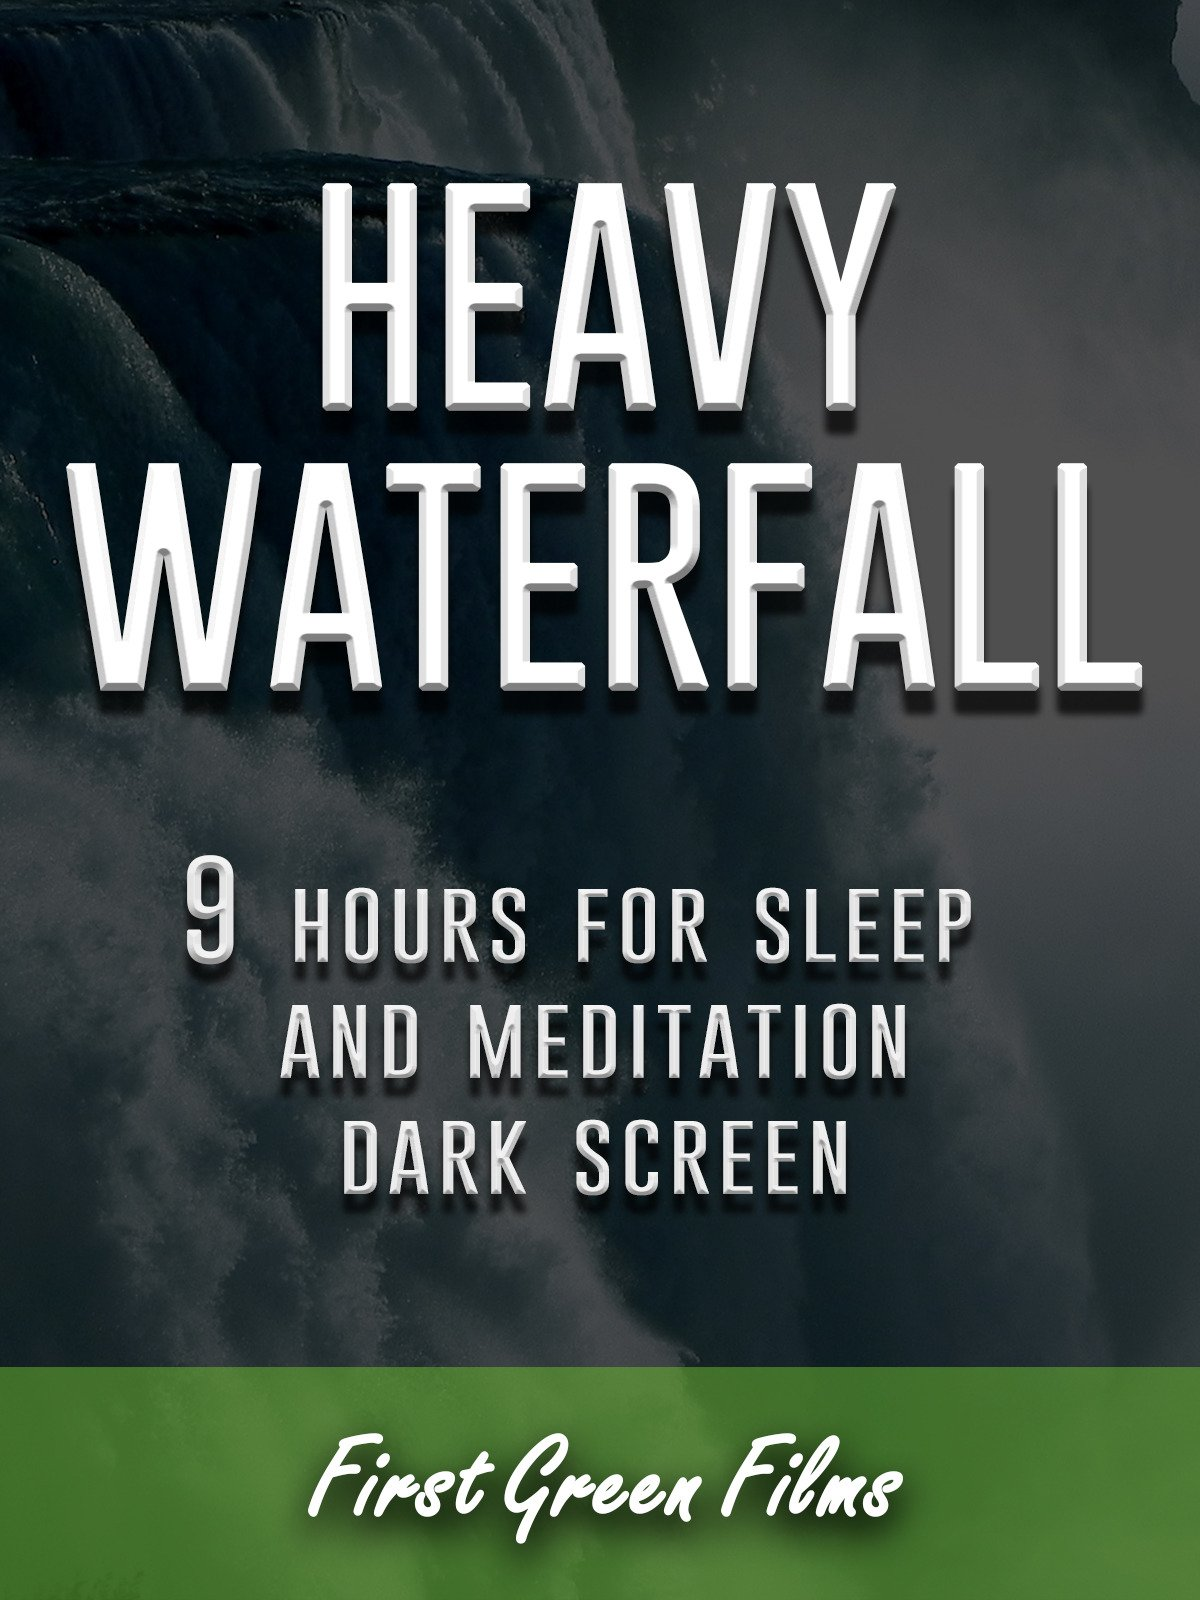 Heavy waterfall, 9 hours for Sleep and Meditation, dark screen